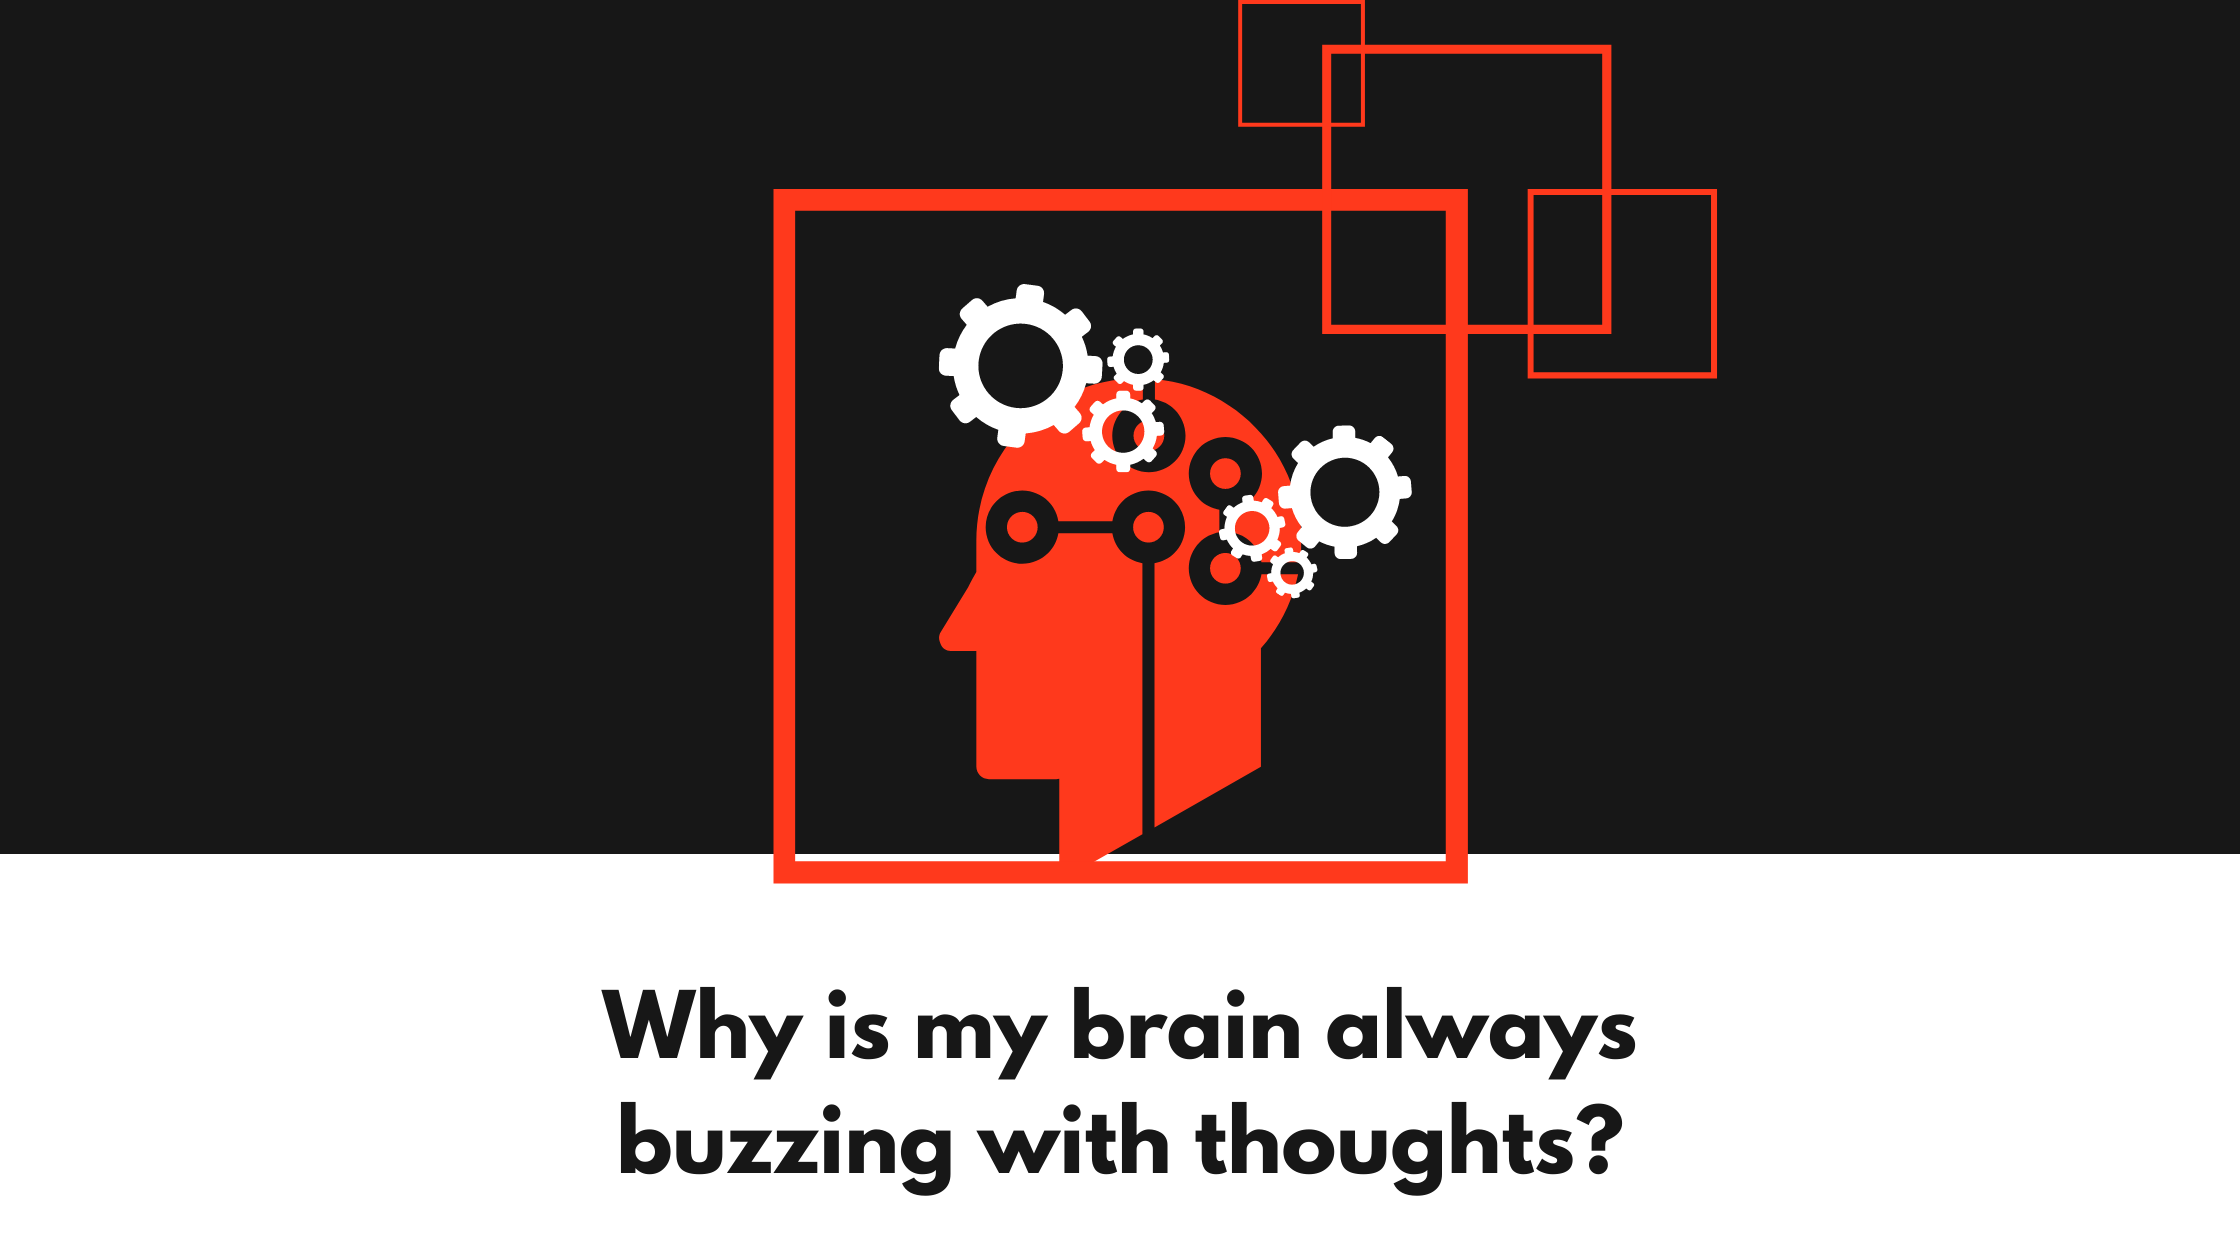 Why is my brain always buzzing with thoughts?